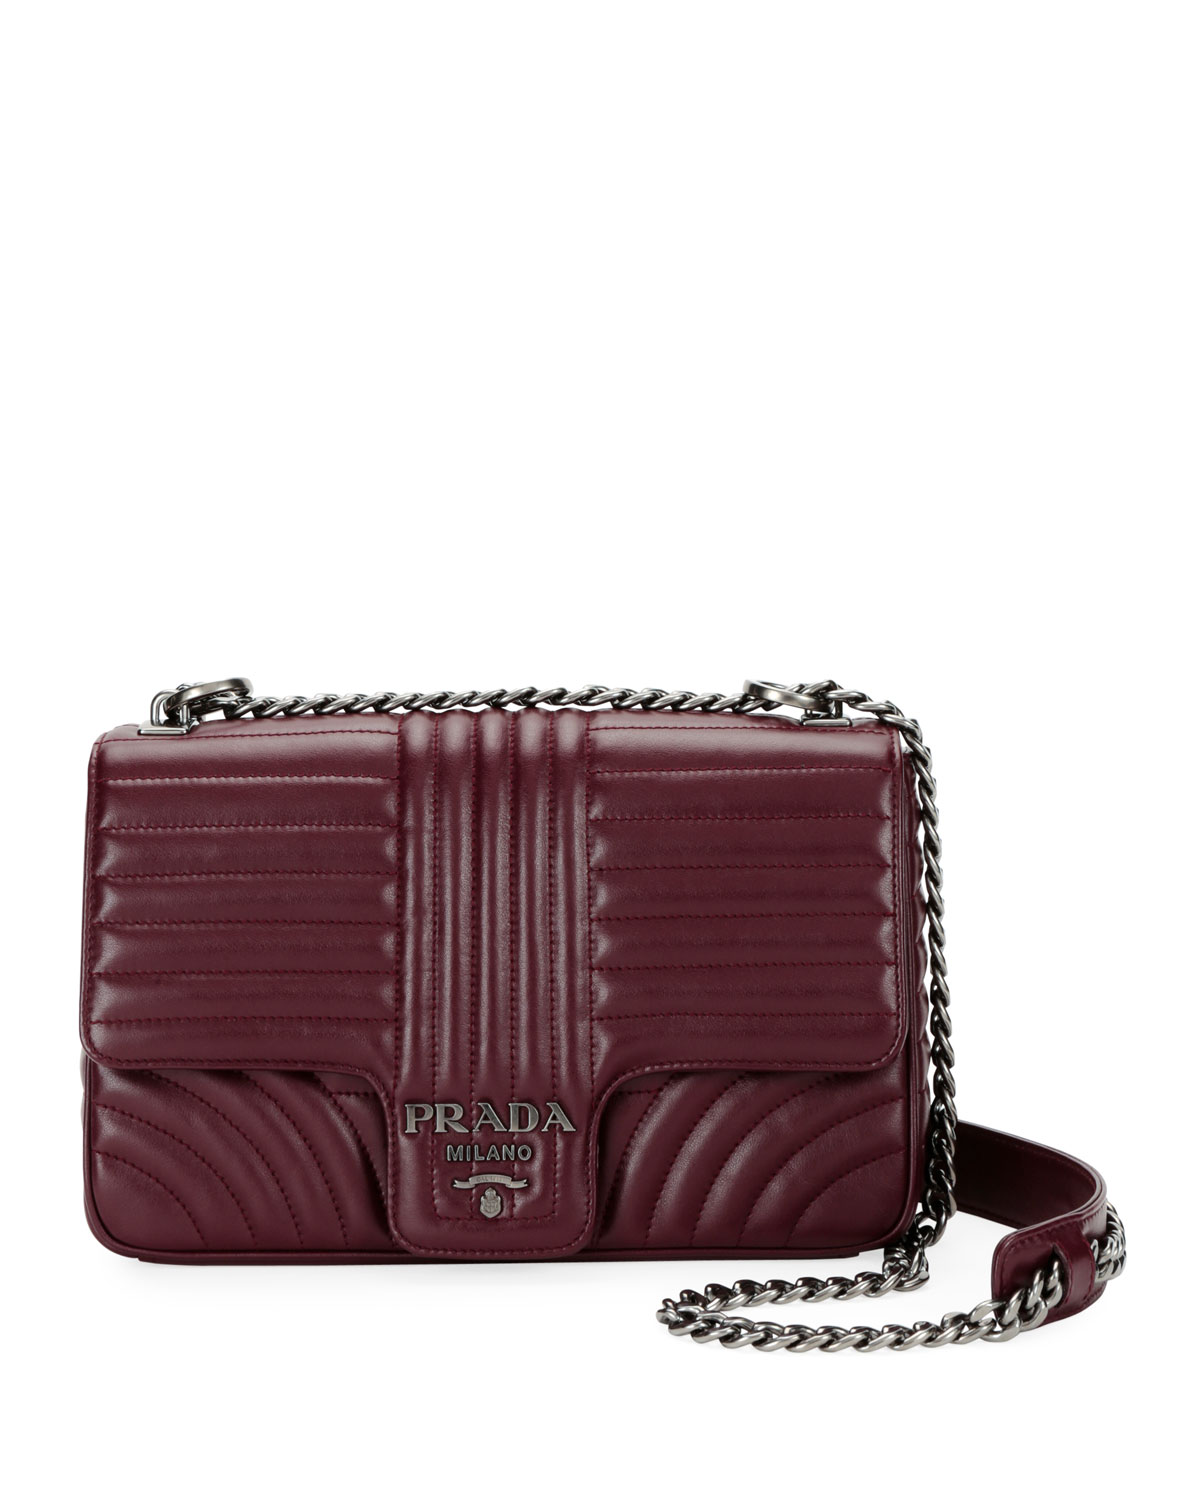 Prada Large Diagramme Shoulder Bag w  Chain Strap  bb7feaed57246